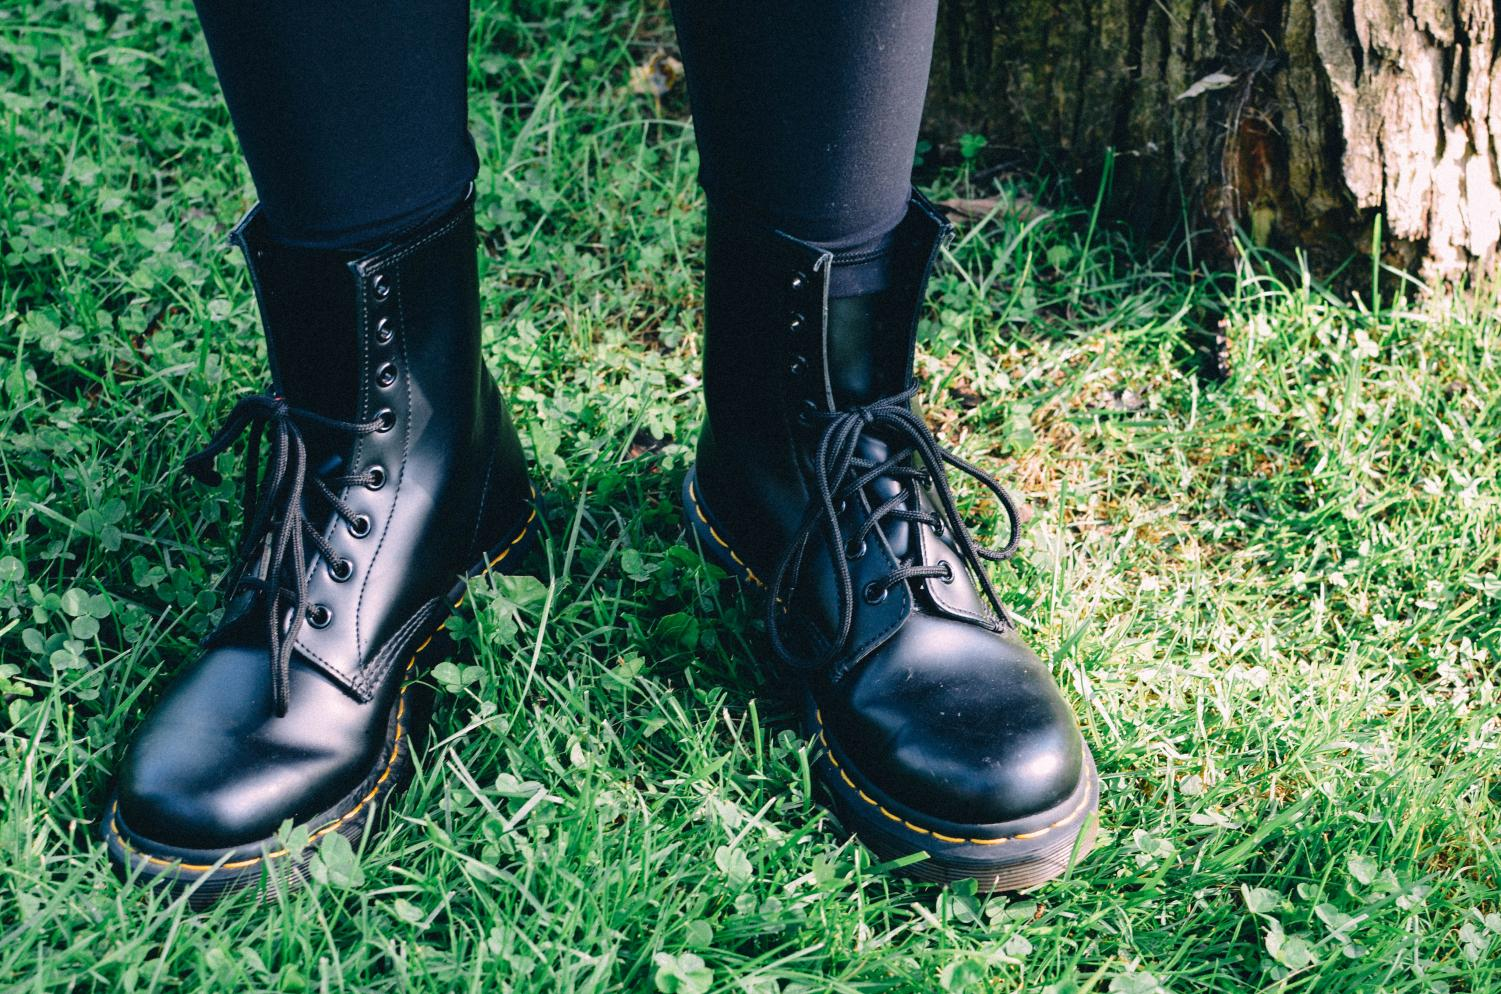 Doc Martens are the perfect fall boots, as they don't shows many signs of weathering or scuff marks.